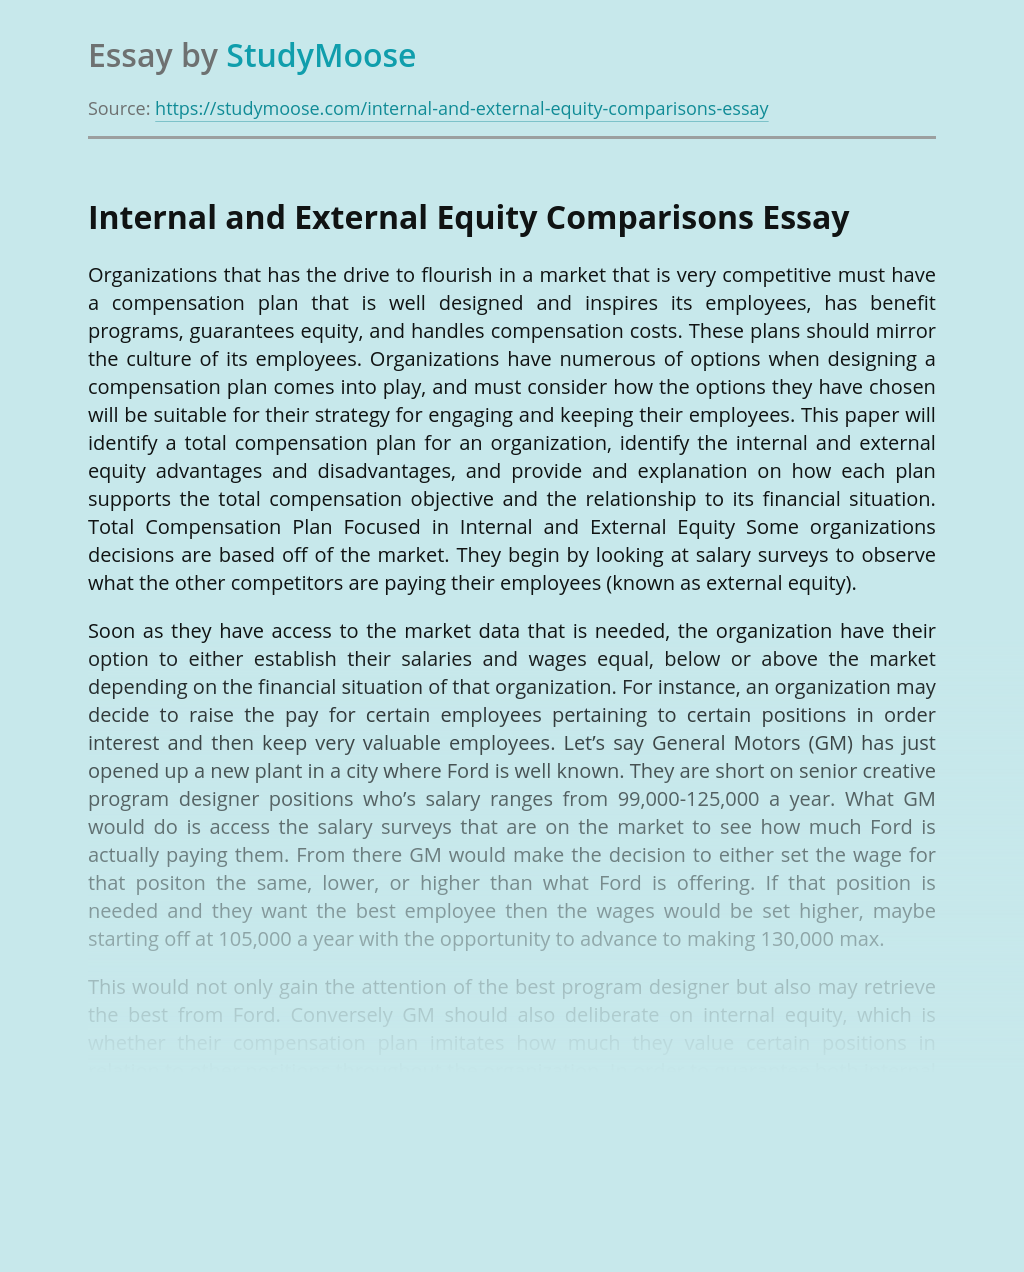 Organization's Internal and External Equity Comparisons